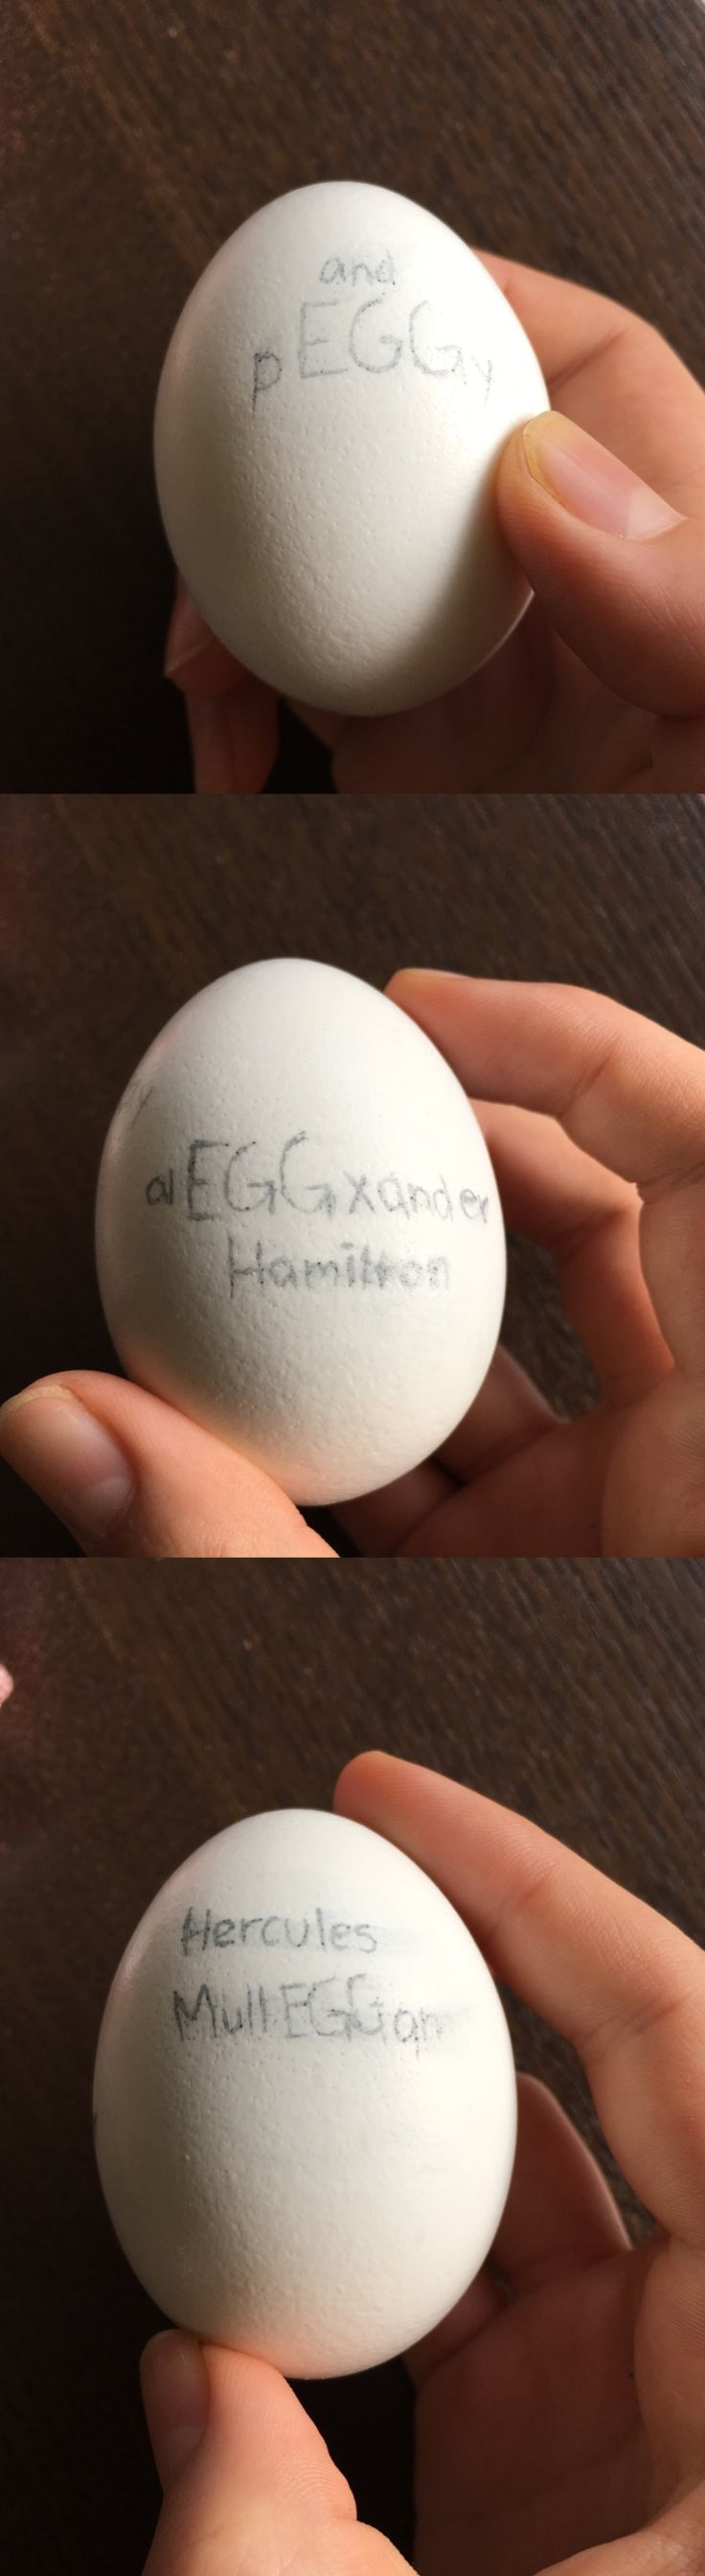 Sorry it's kind of hard to read, I didn't want to use Sharpie so I used a regular pen. Here we can see pEGGy, alEGGxander Hamilton, and Hercules MullEGGan. Happy easter